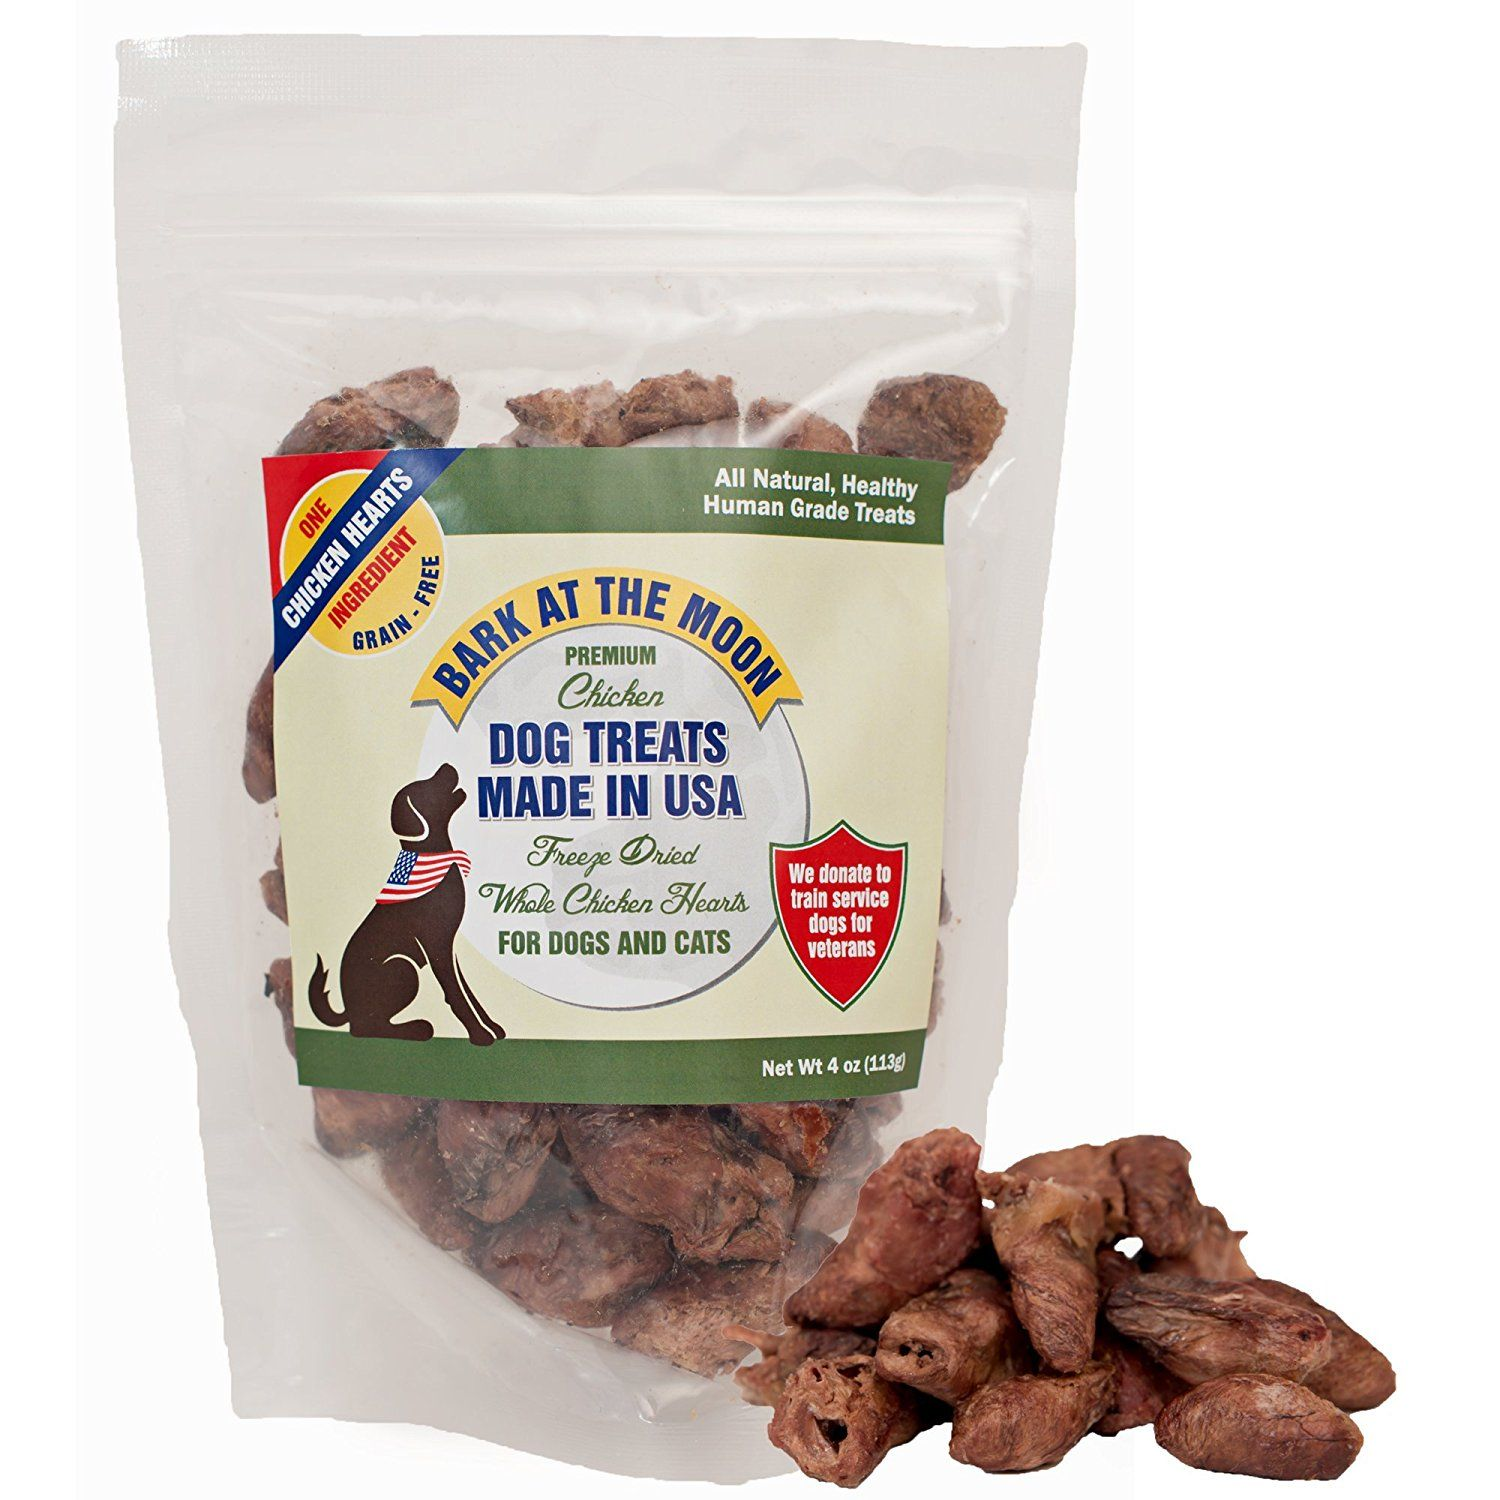 Premium Chicken Dog Treats Made In Usa Freeze Dried Whole